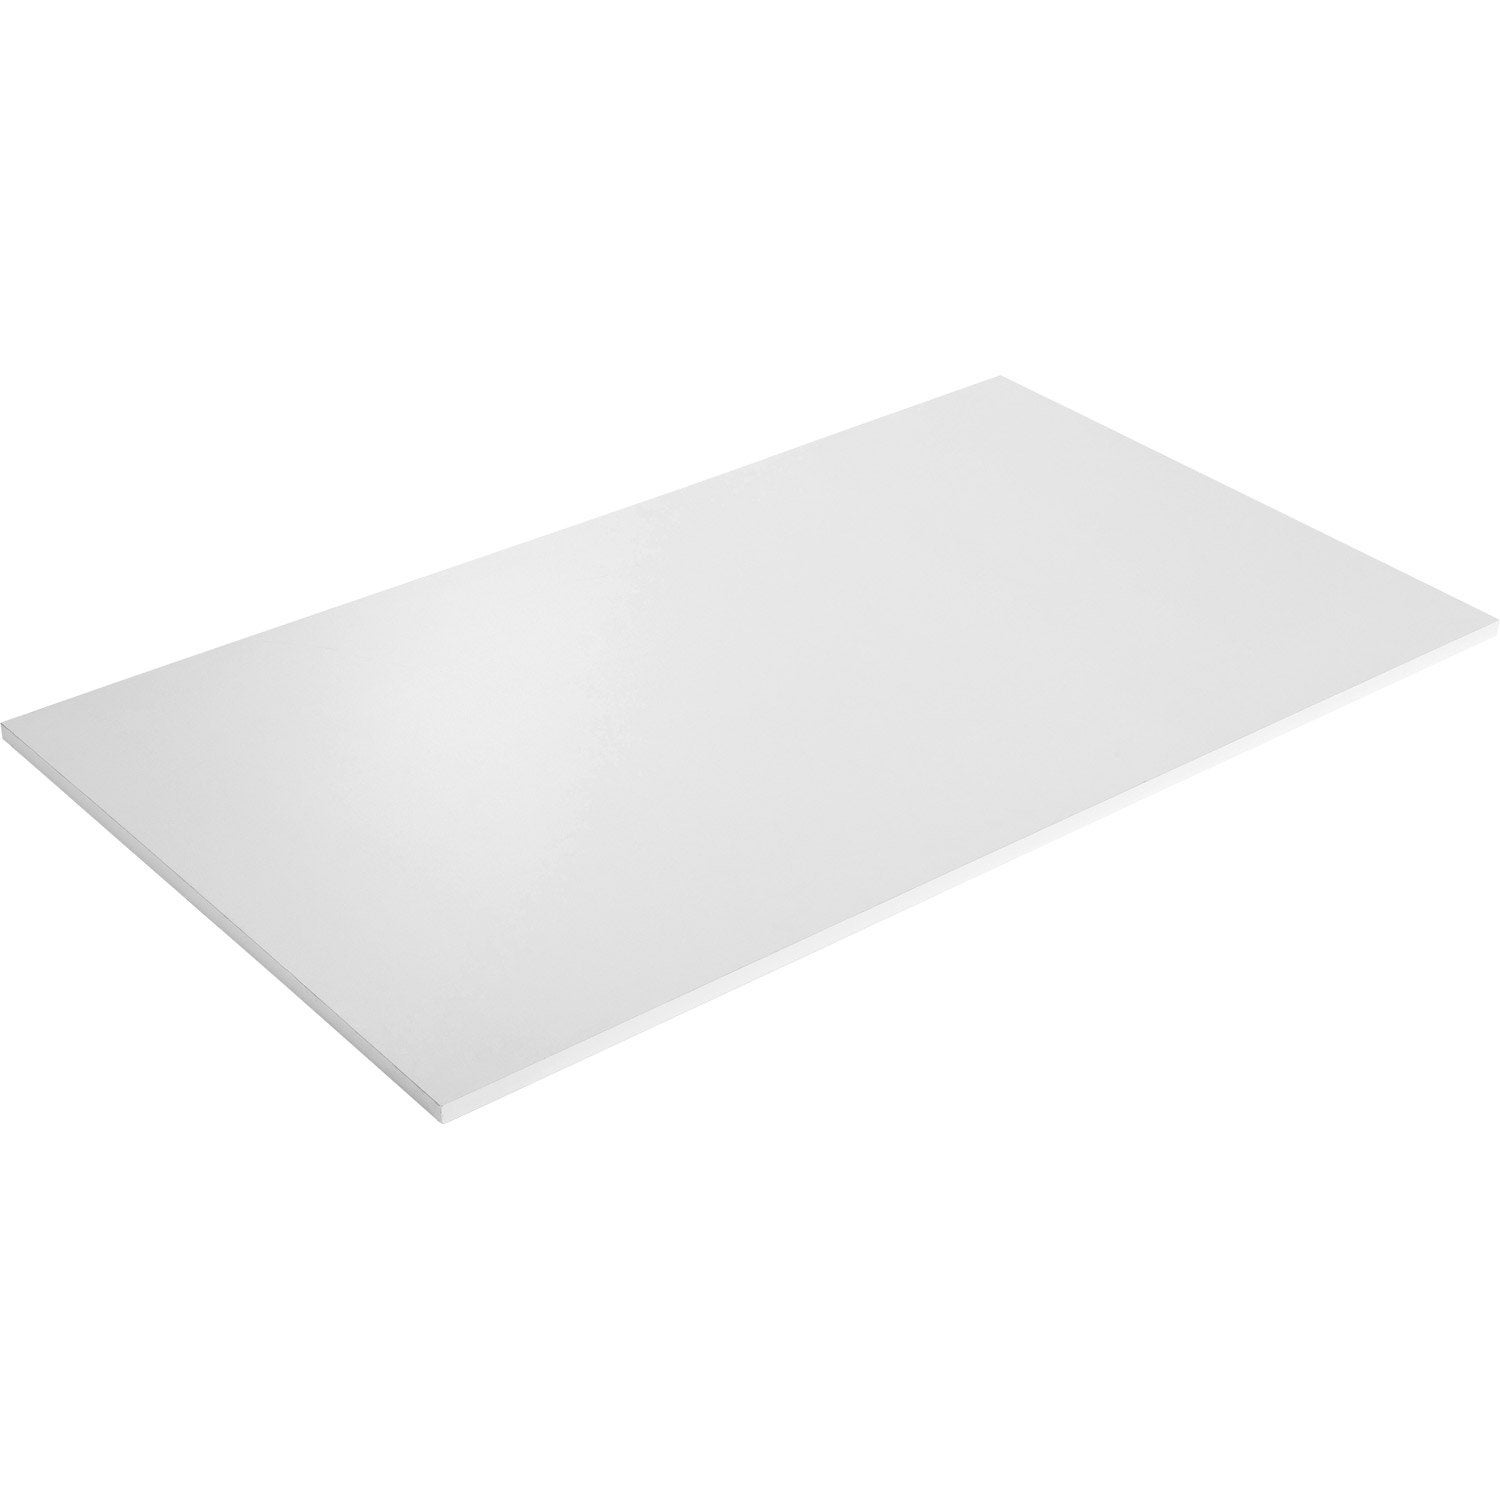 Plateau de table agglom r blanc x cm x mm leroy merlin for Plateau en verre pour table